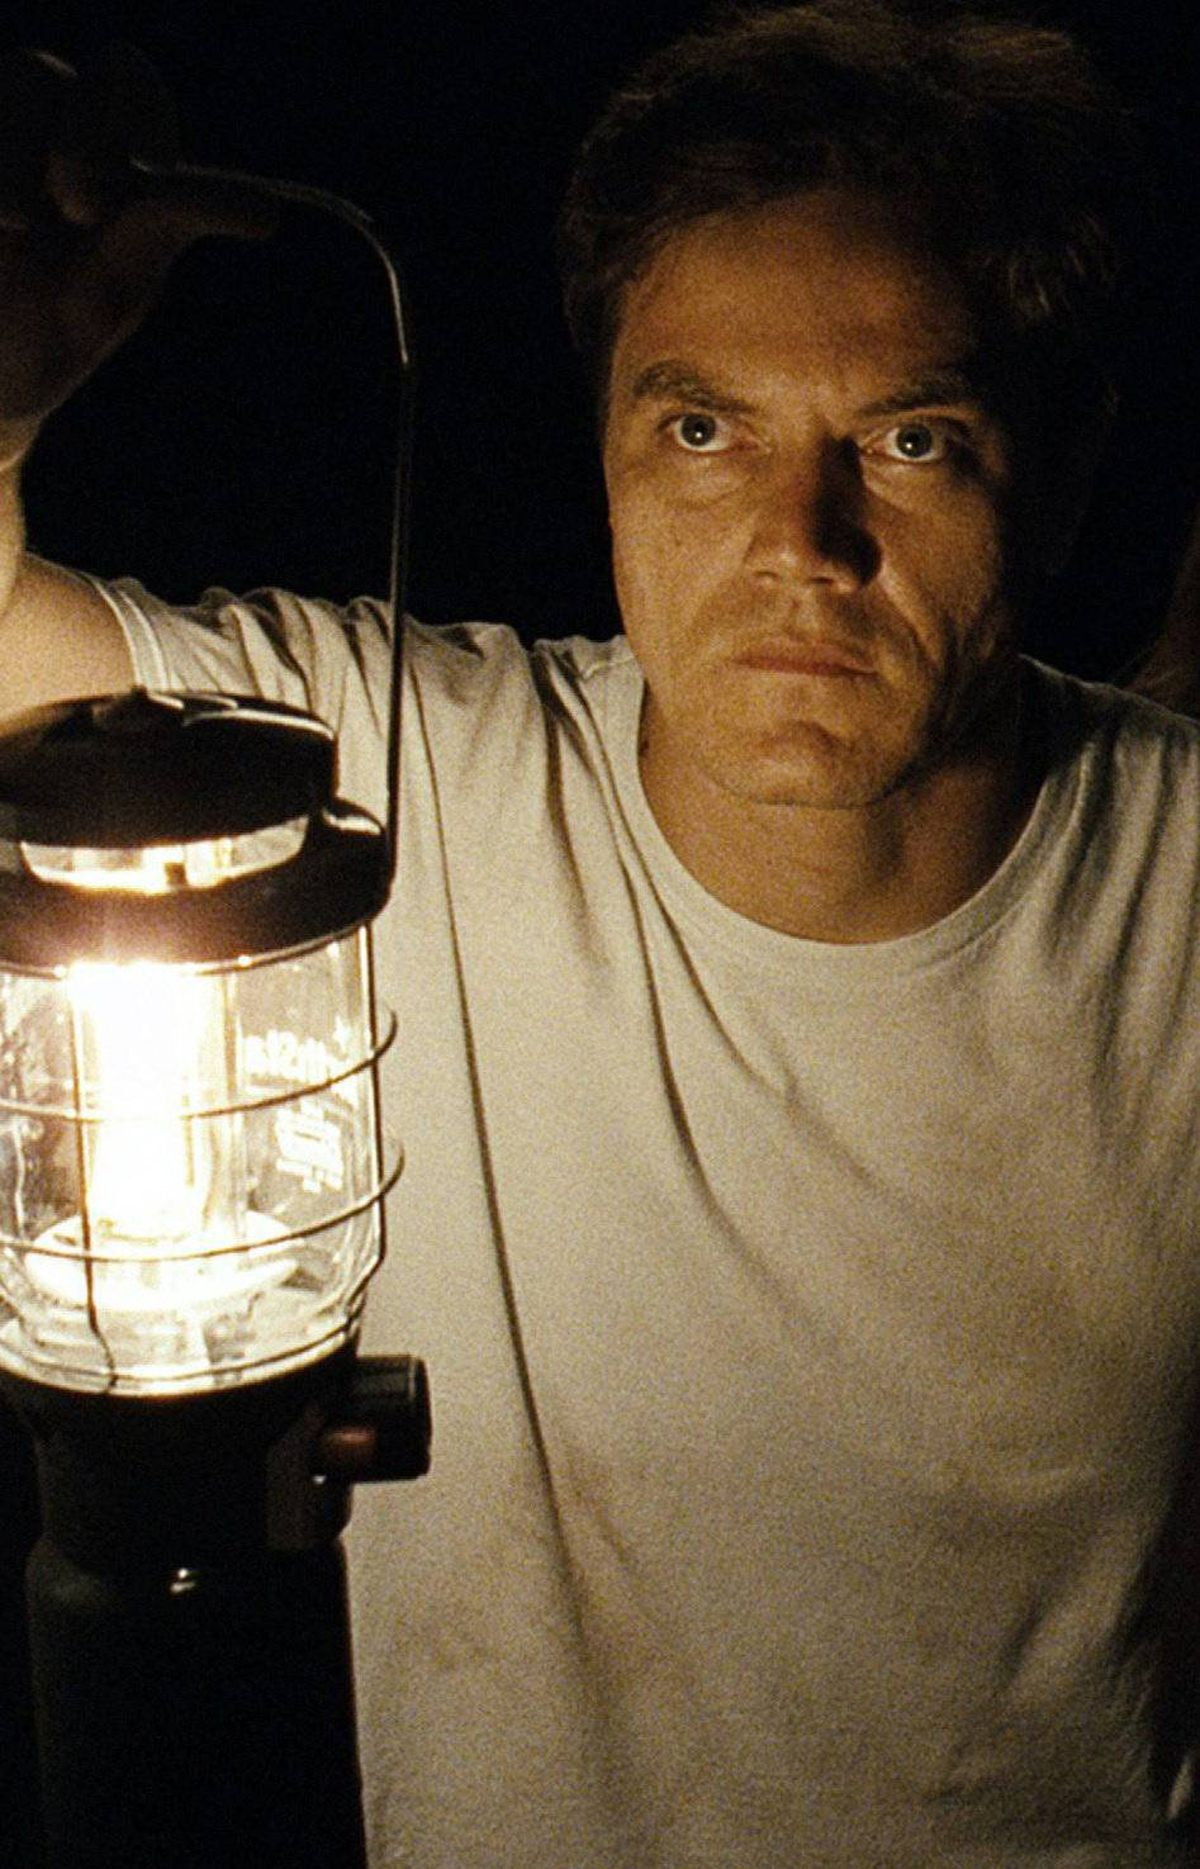 TAKE SHELTER A film that's sounds the right apocalyptic trumpet call at the right time, Jeff Nichols's film features a haunting performance by Michael Shannon as an Ohio construction worker afflicted with fearful visions of a tempest that will destroy all he holds dear.